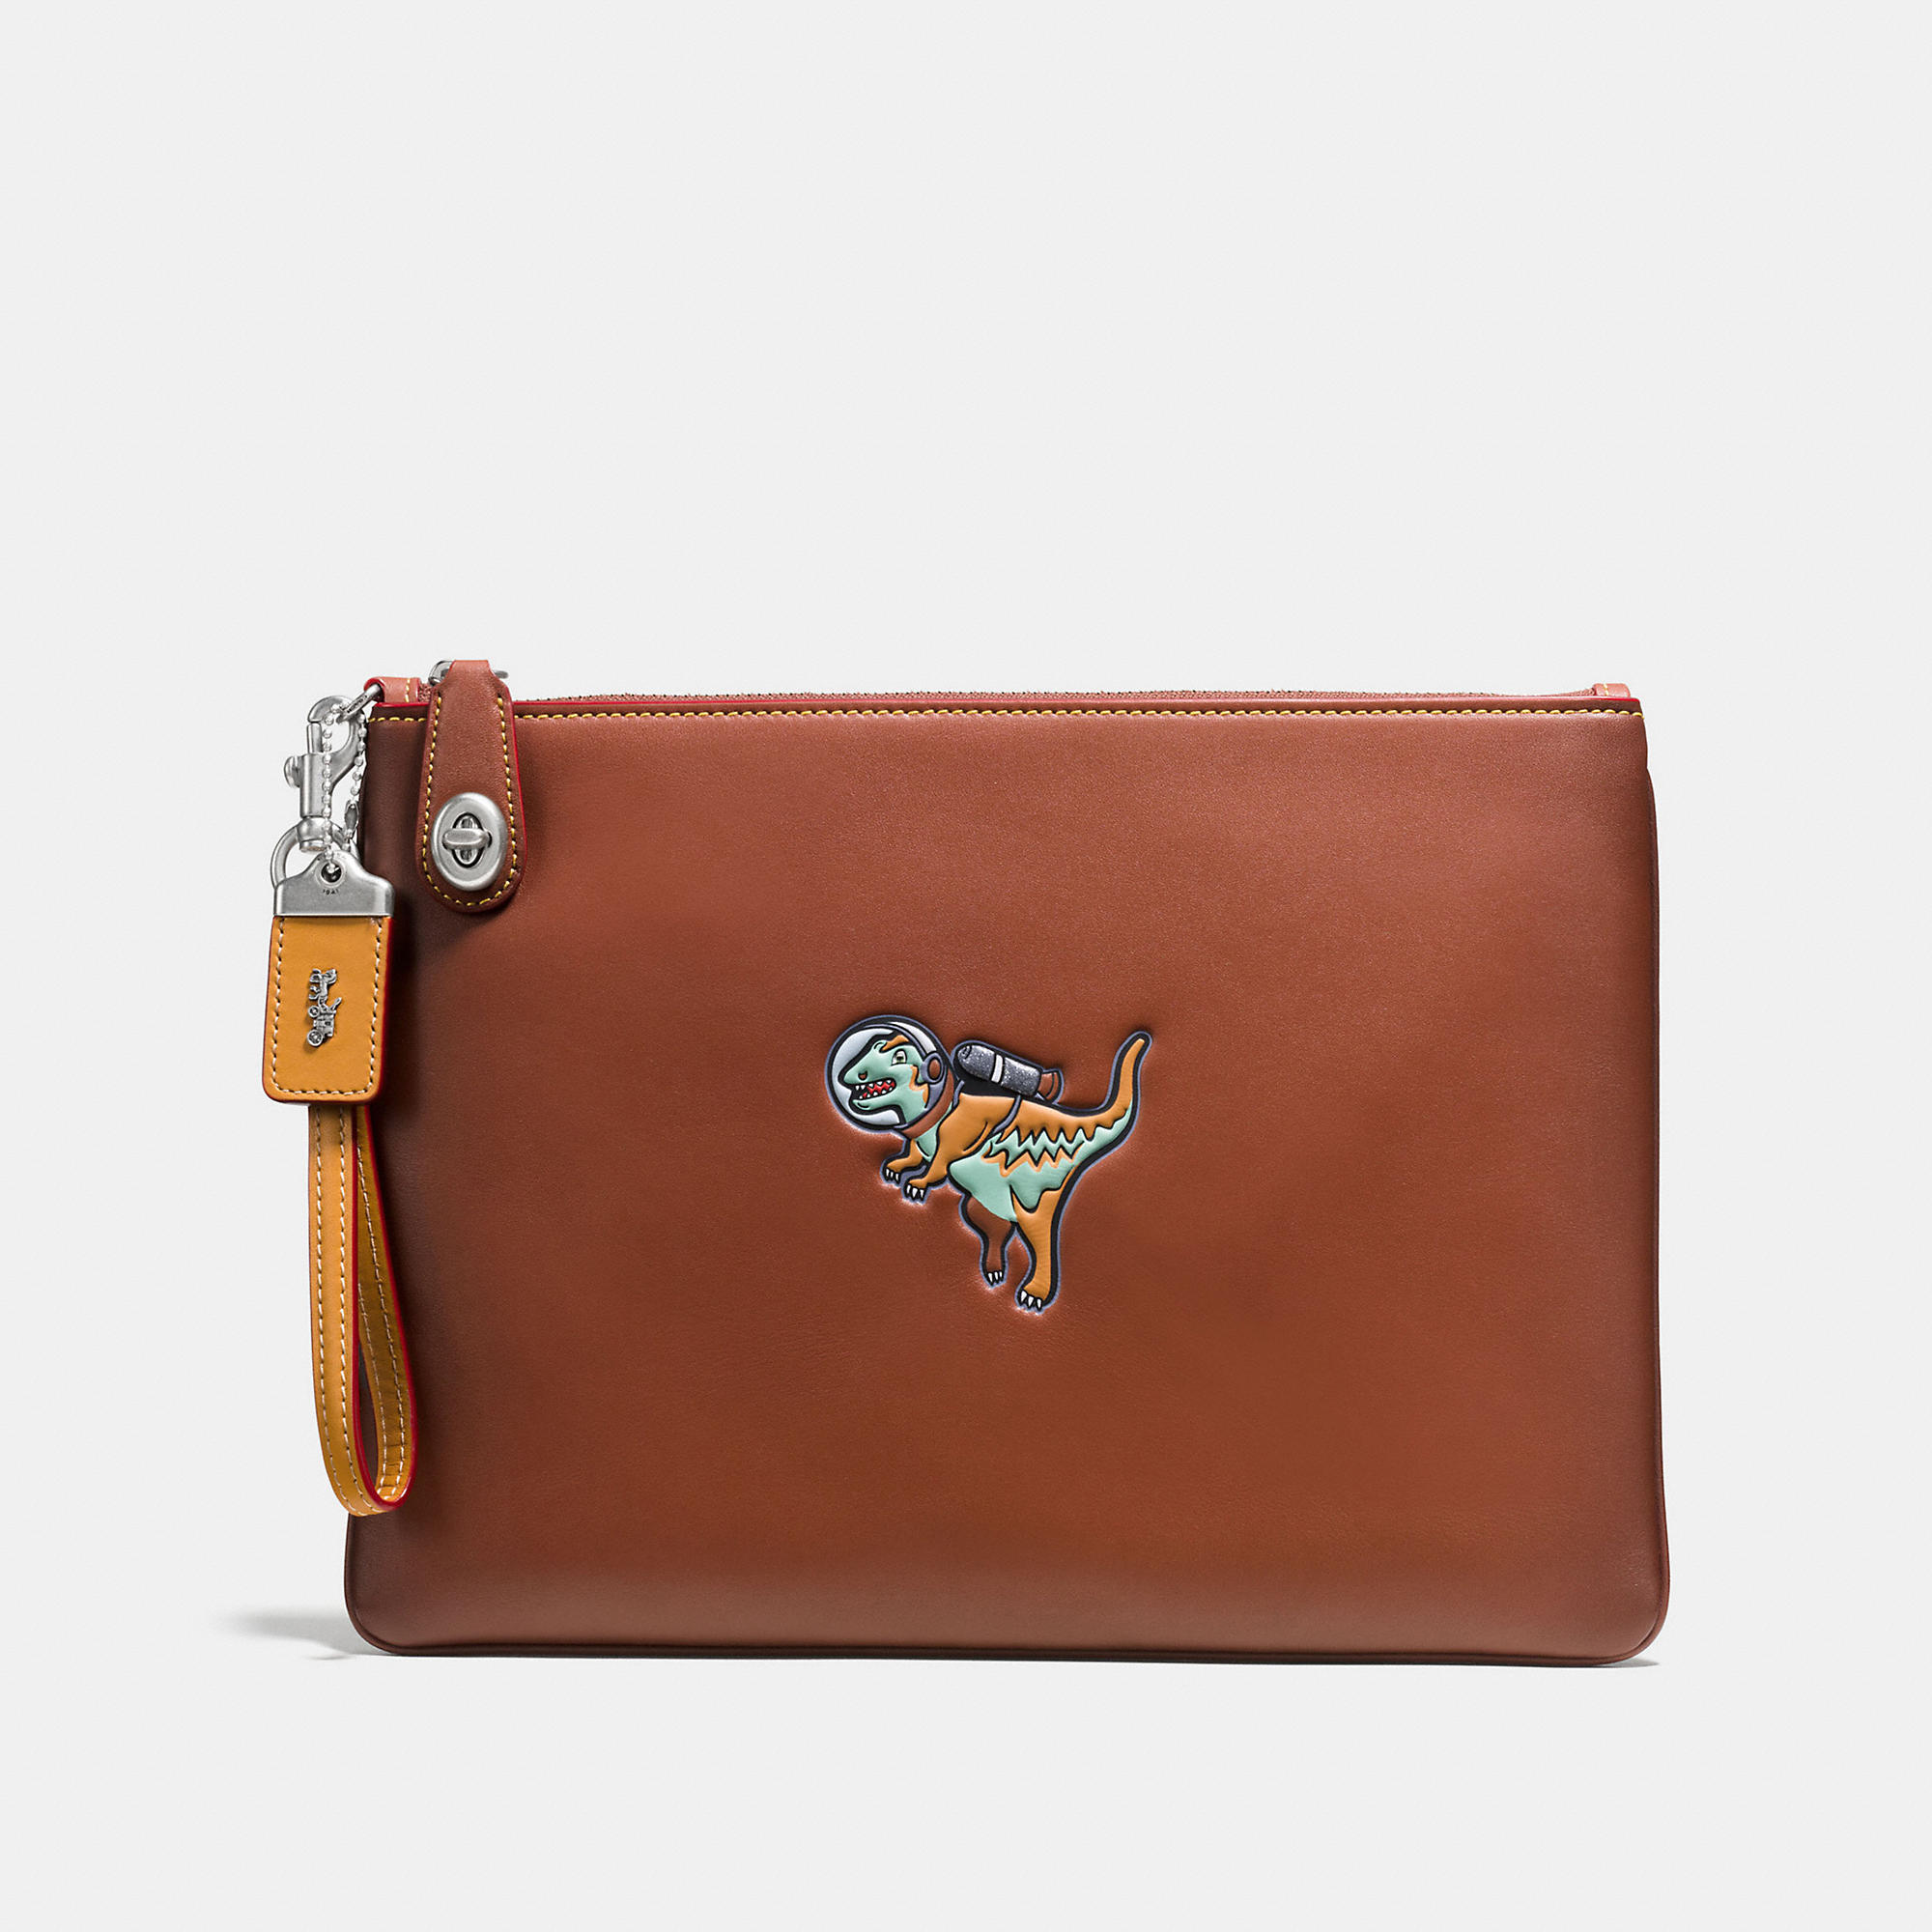 Coach Turnlock Wristlet 30 In Glovetanned Leather With Embossed Space Rexy